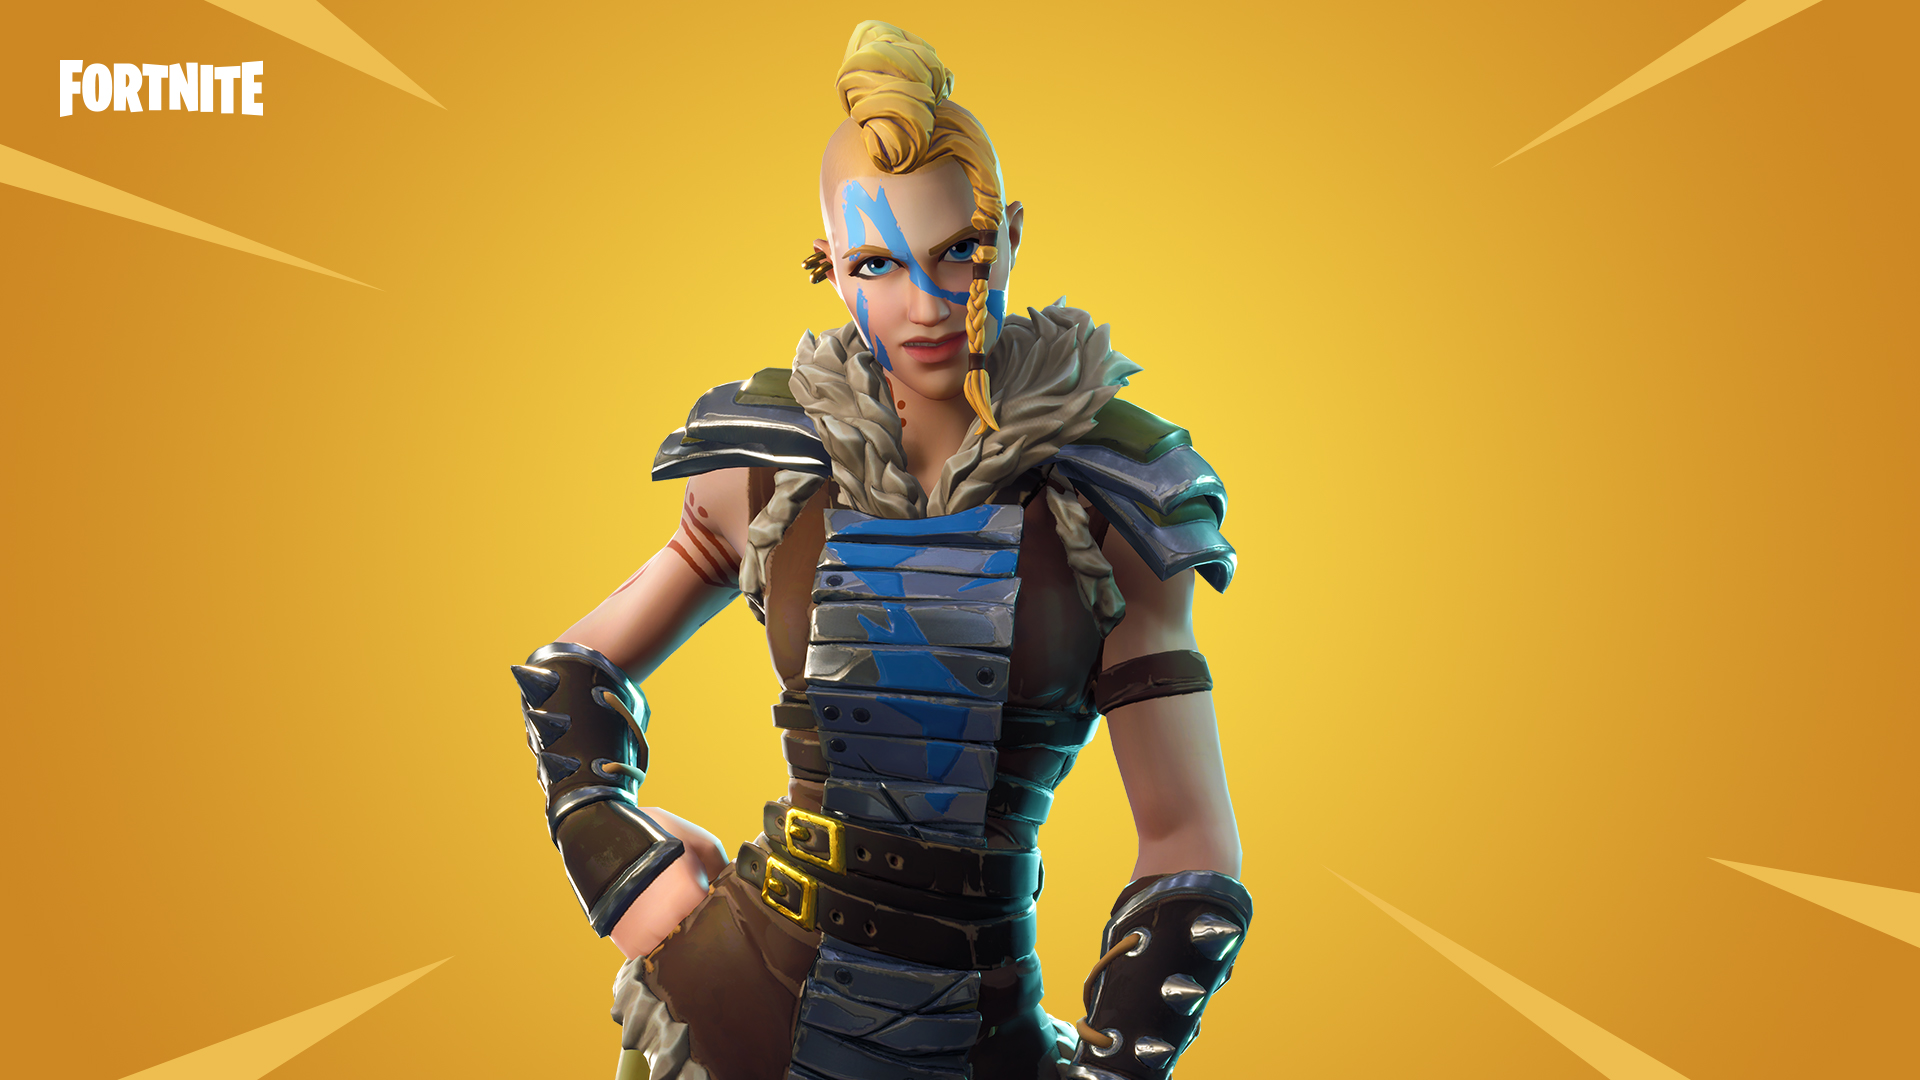 V5.21 Cape Fortnite Fortnite Switch Software Updates Launch To December 2018 Perfectly Nintendo